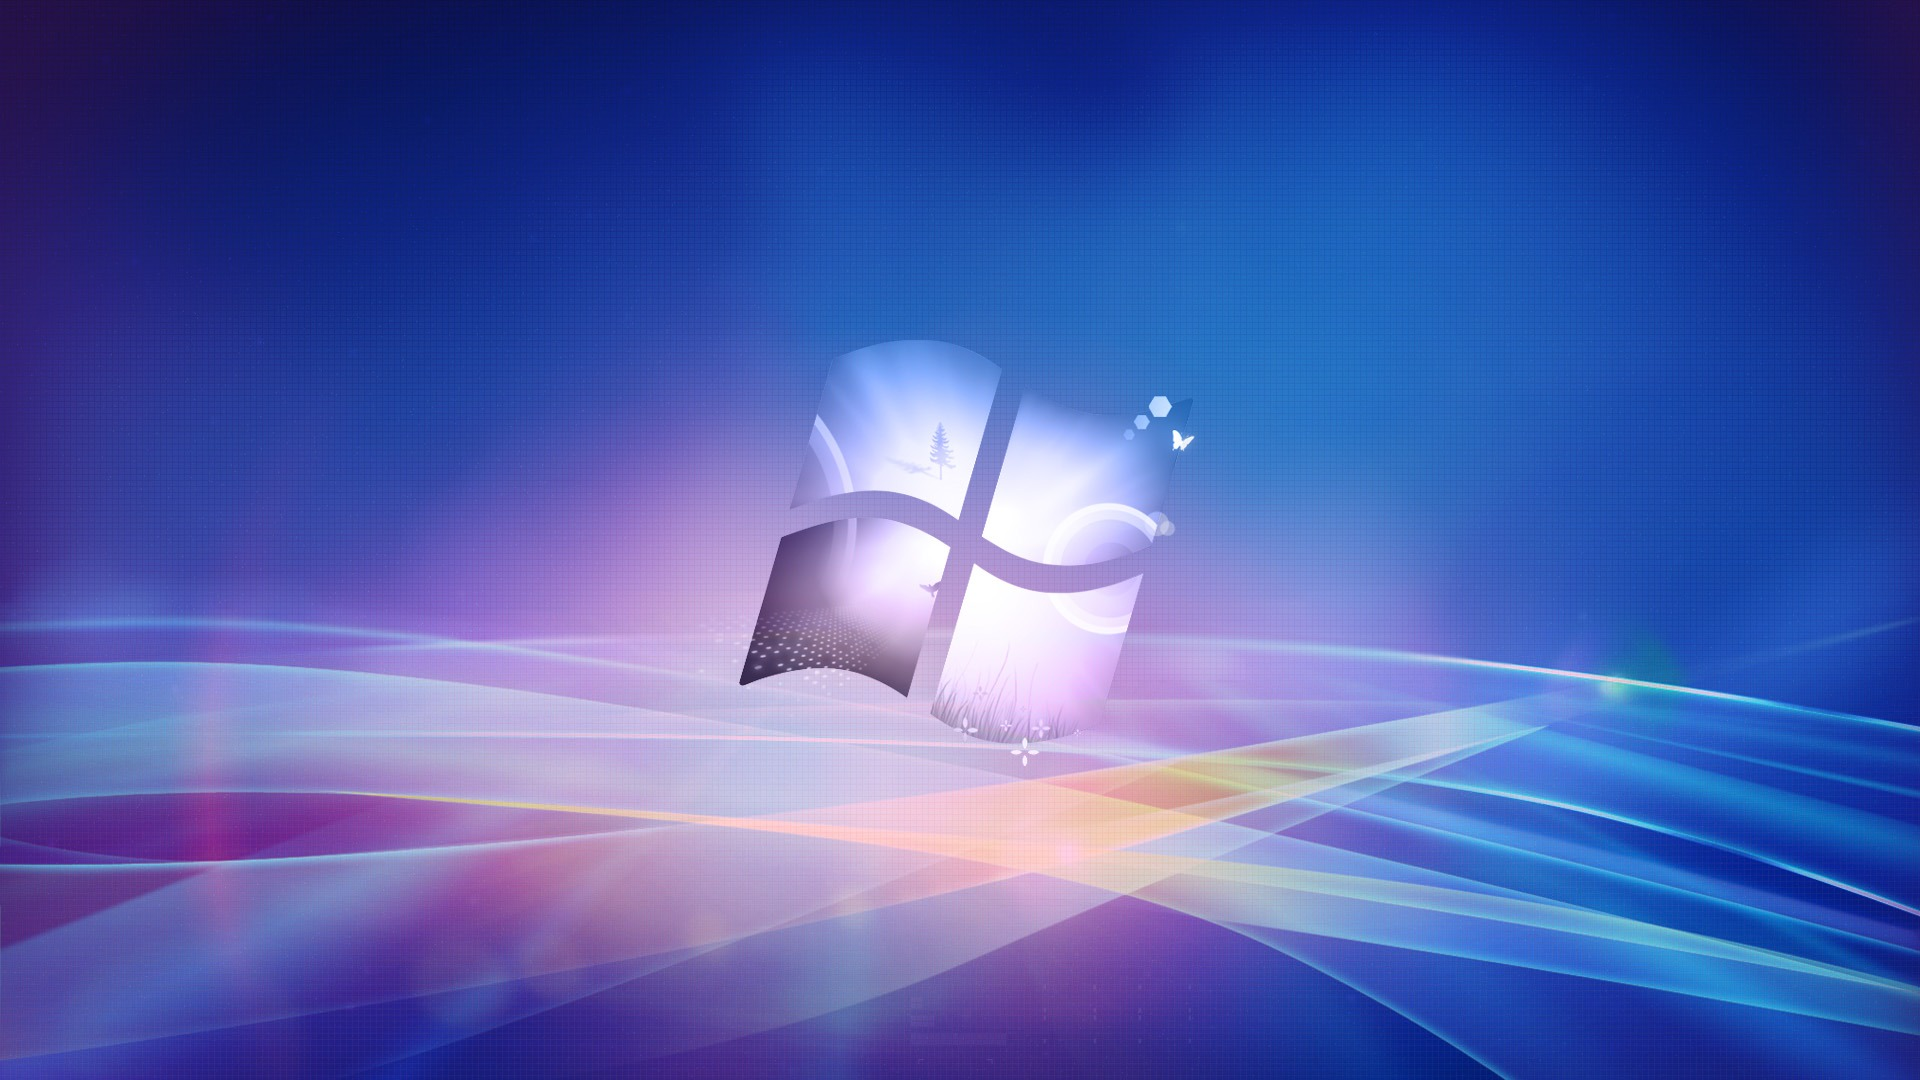 Windows 9 HD Widescreen Wallpaper 16   1920x1080 wallpaper download 1920x1080